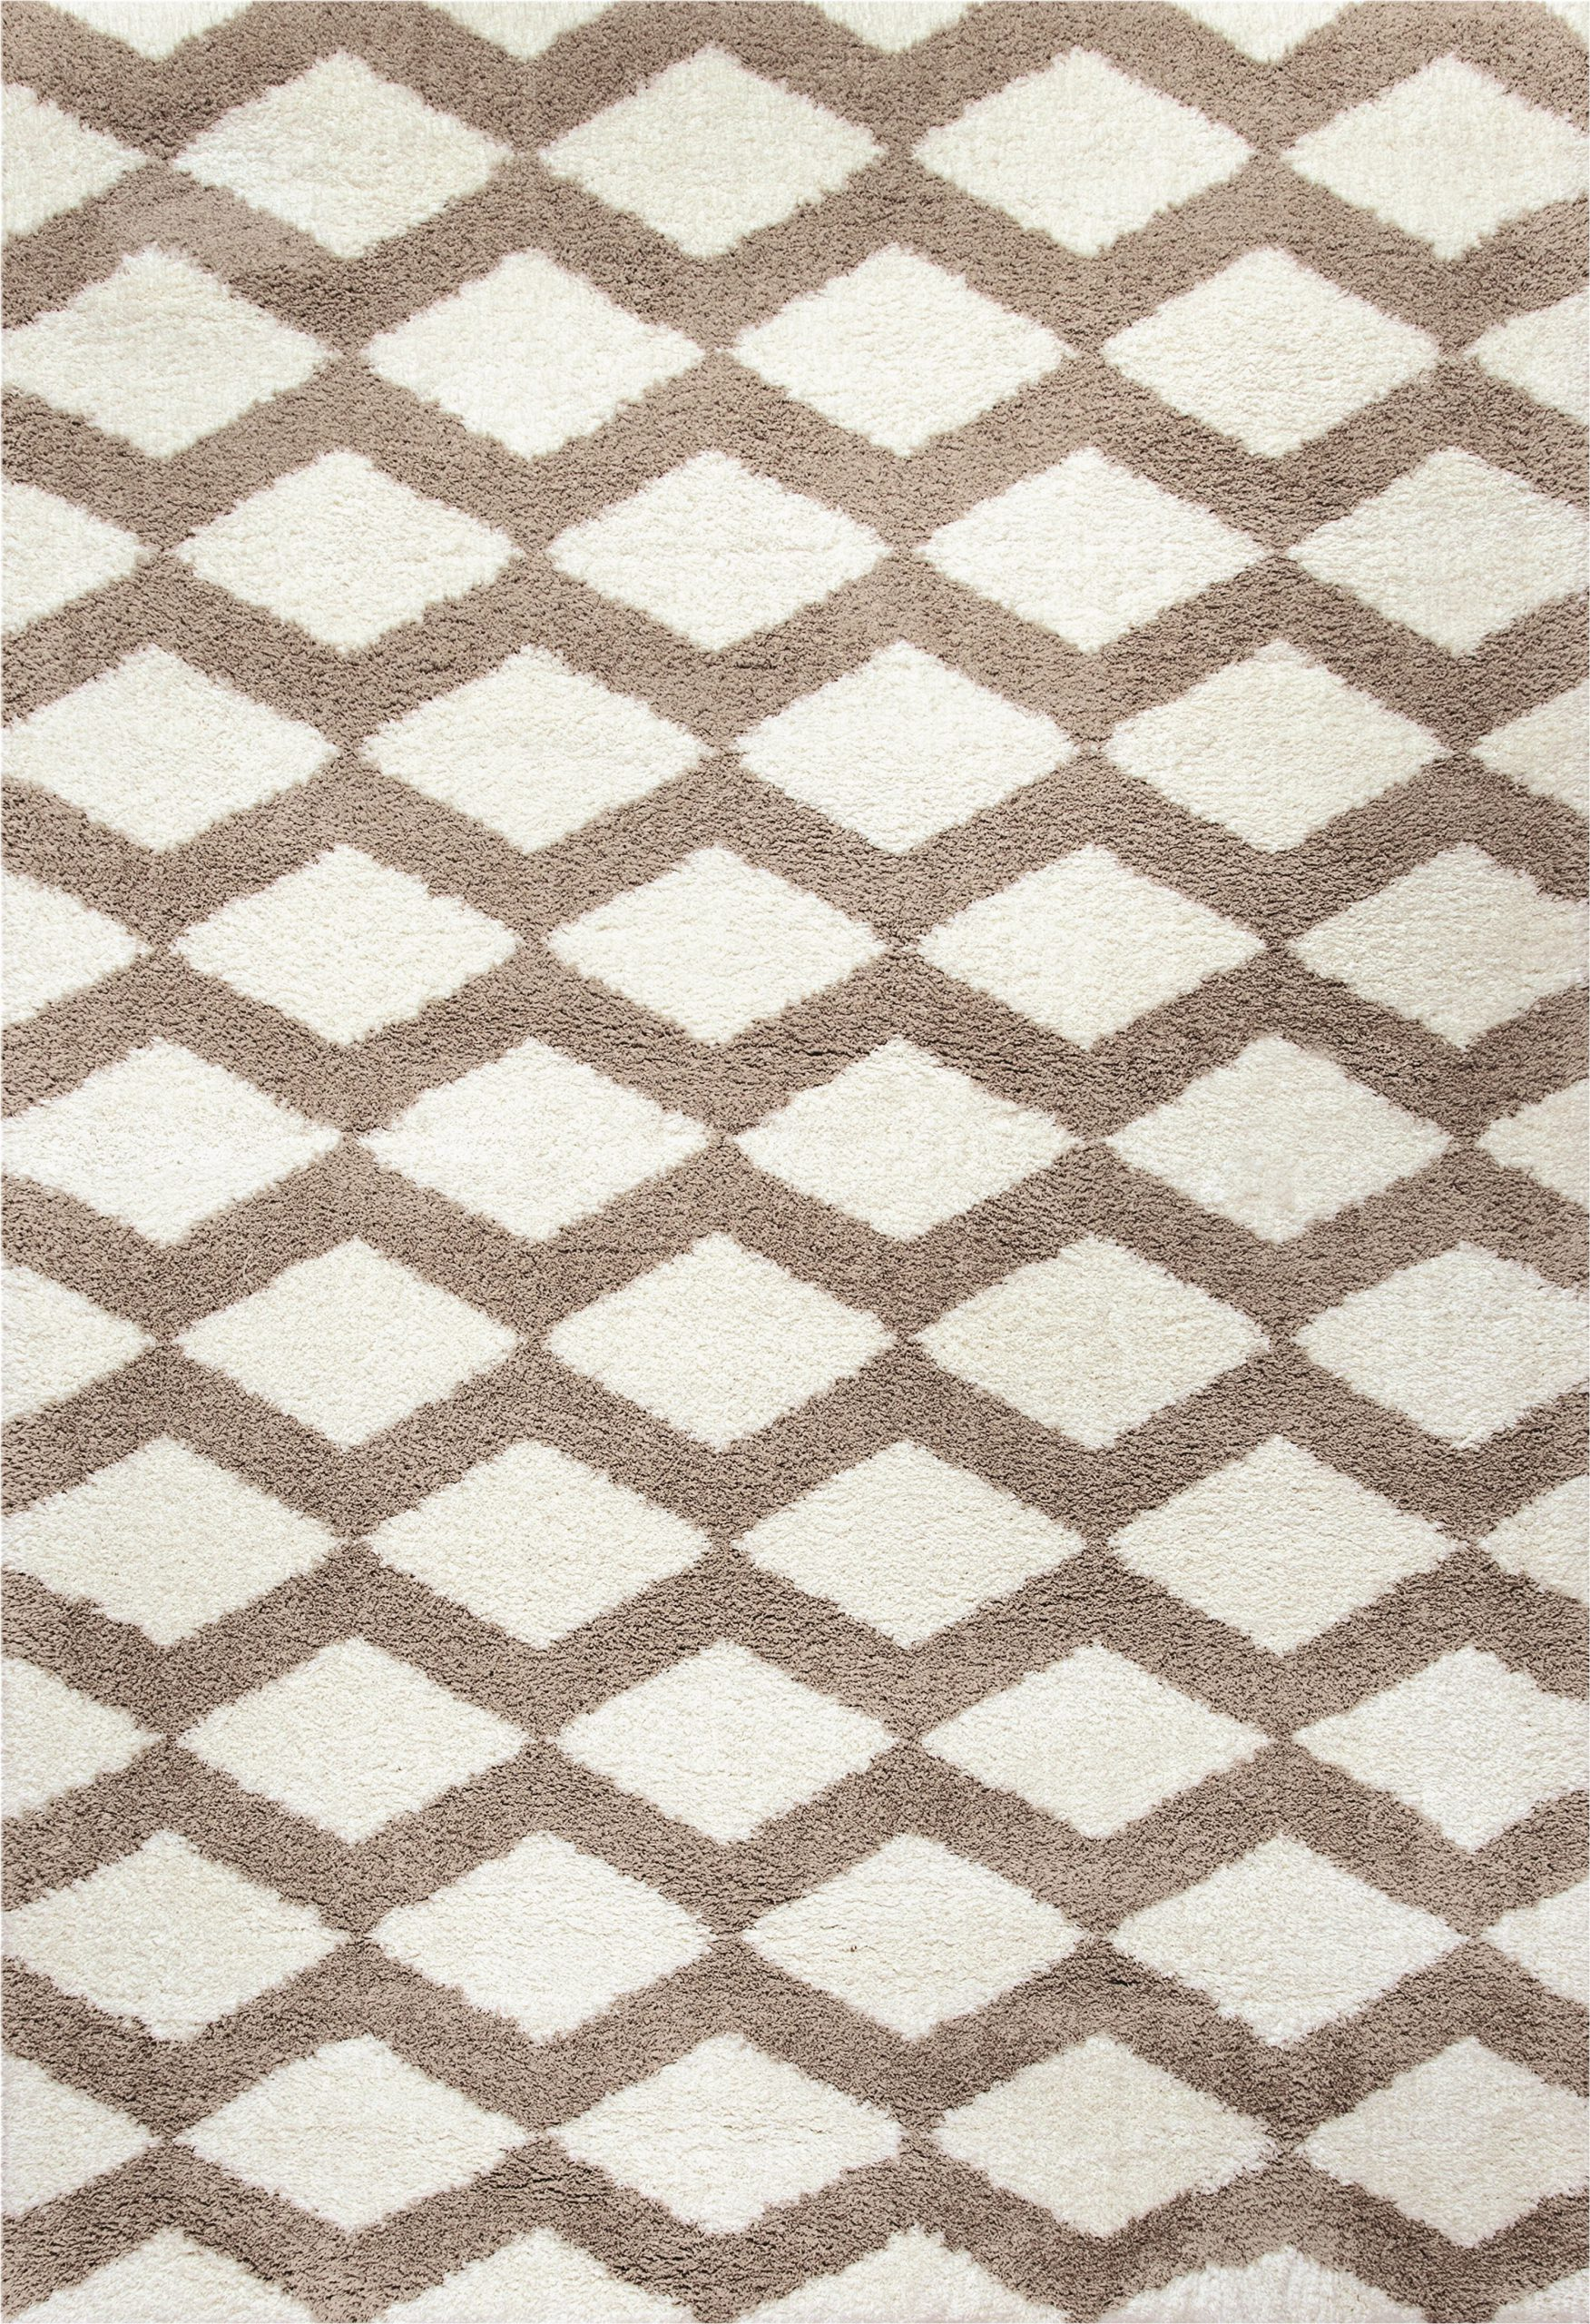 Area Rug Non Slip Pad Lowes Lowes White Beige area Rug